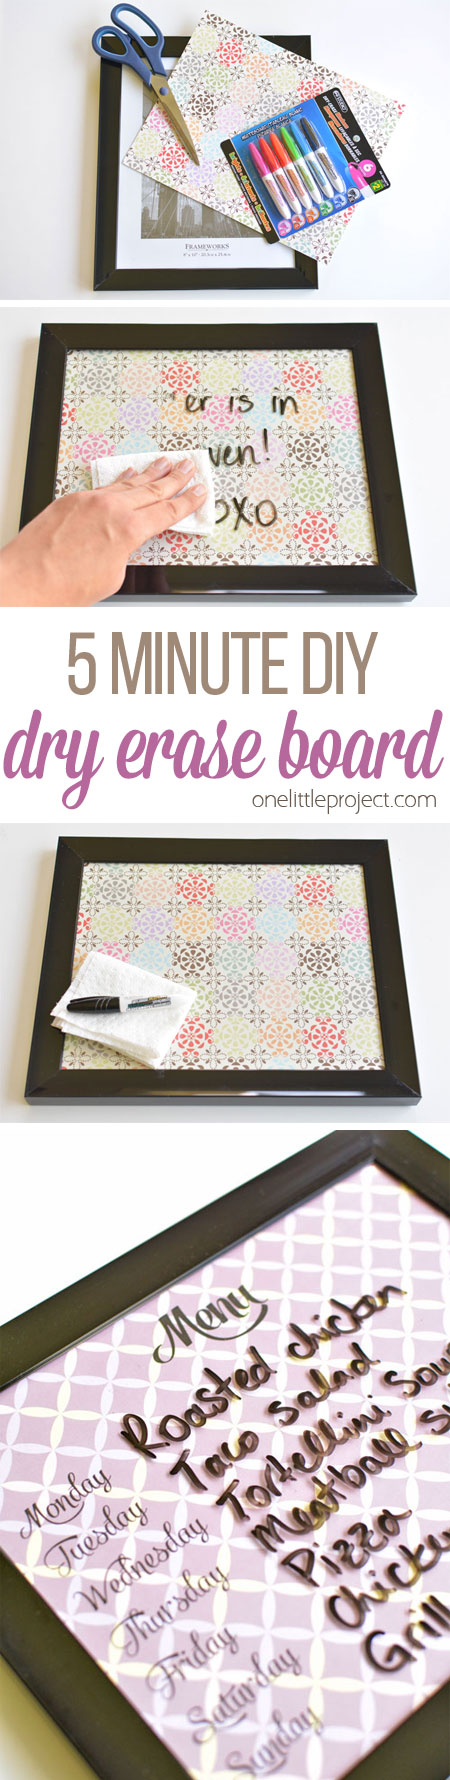 5 Minute Dry Erase Board Easy Diy Whiteboards